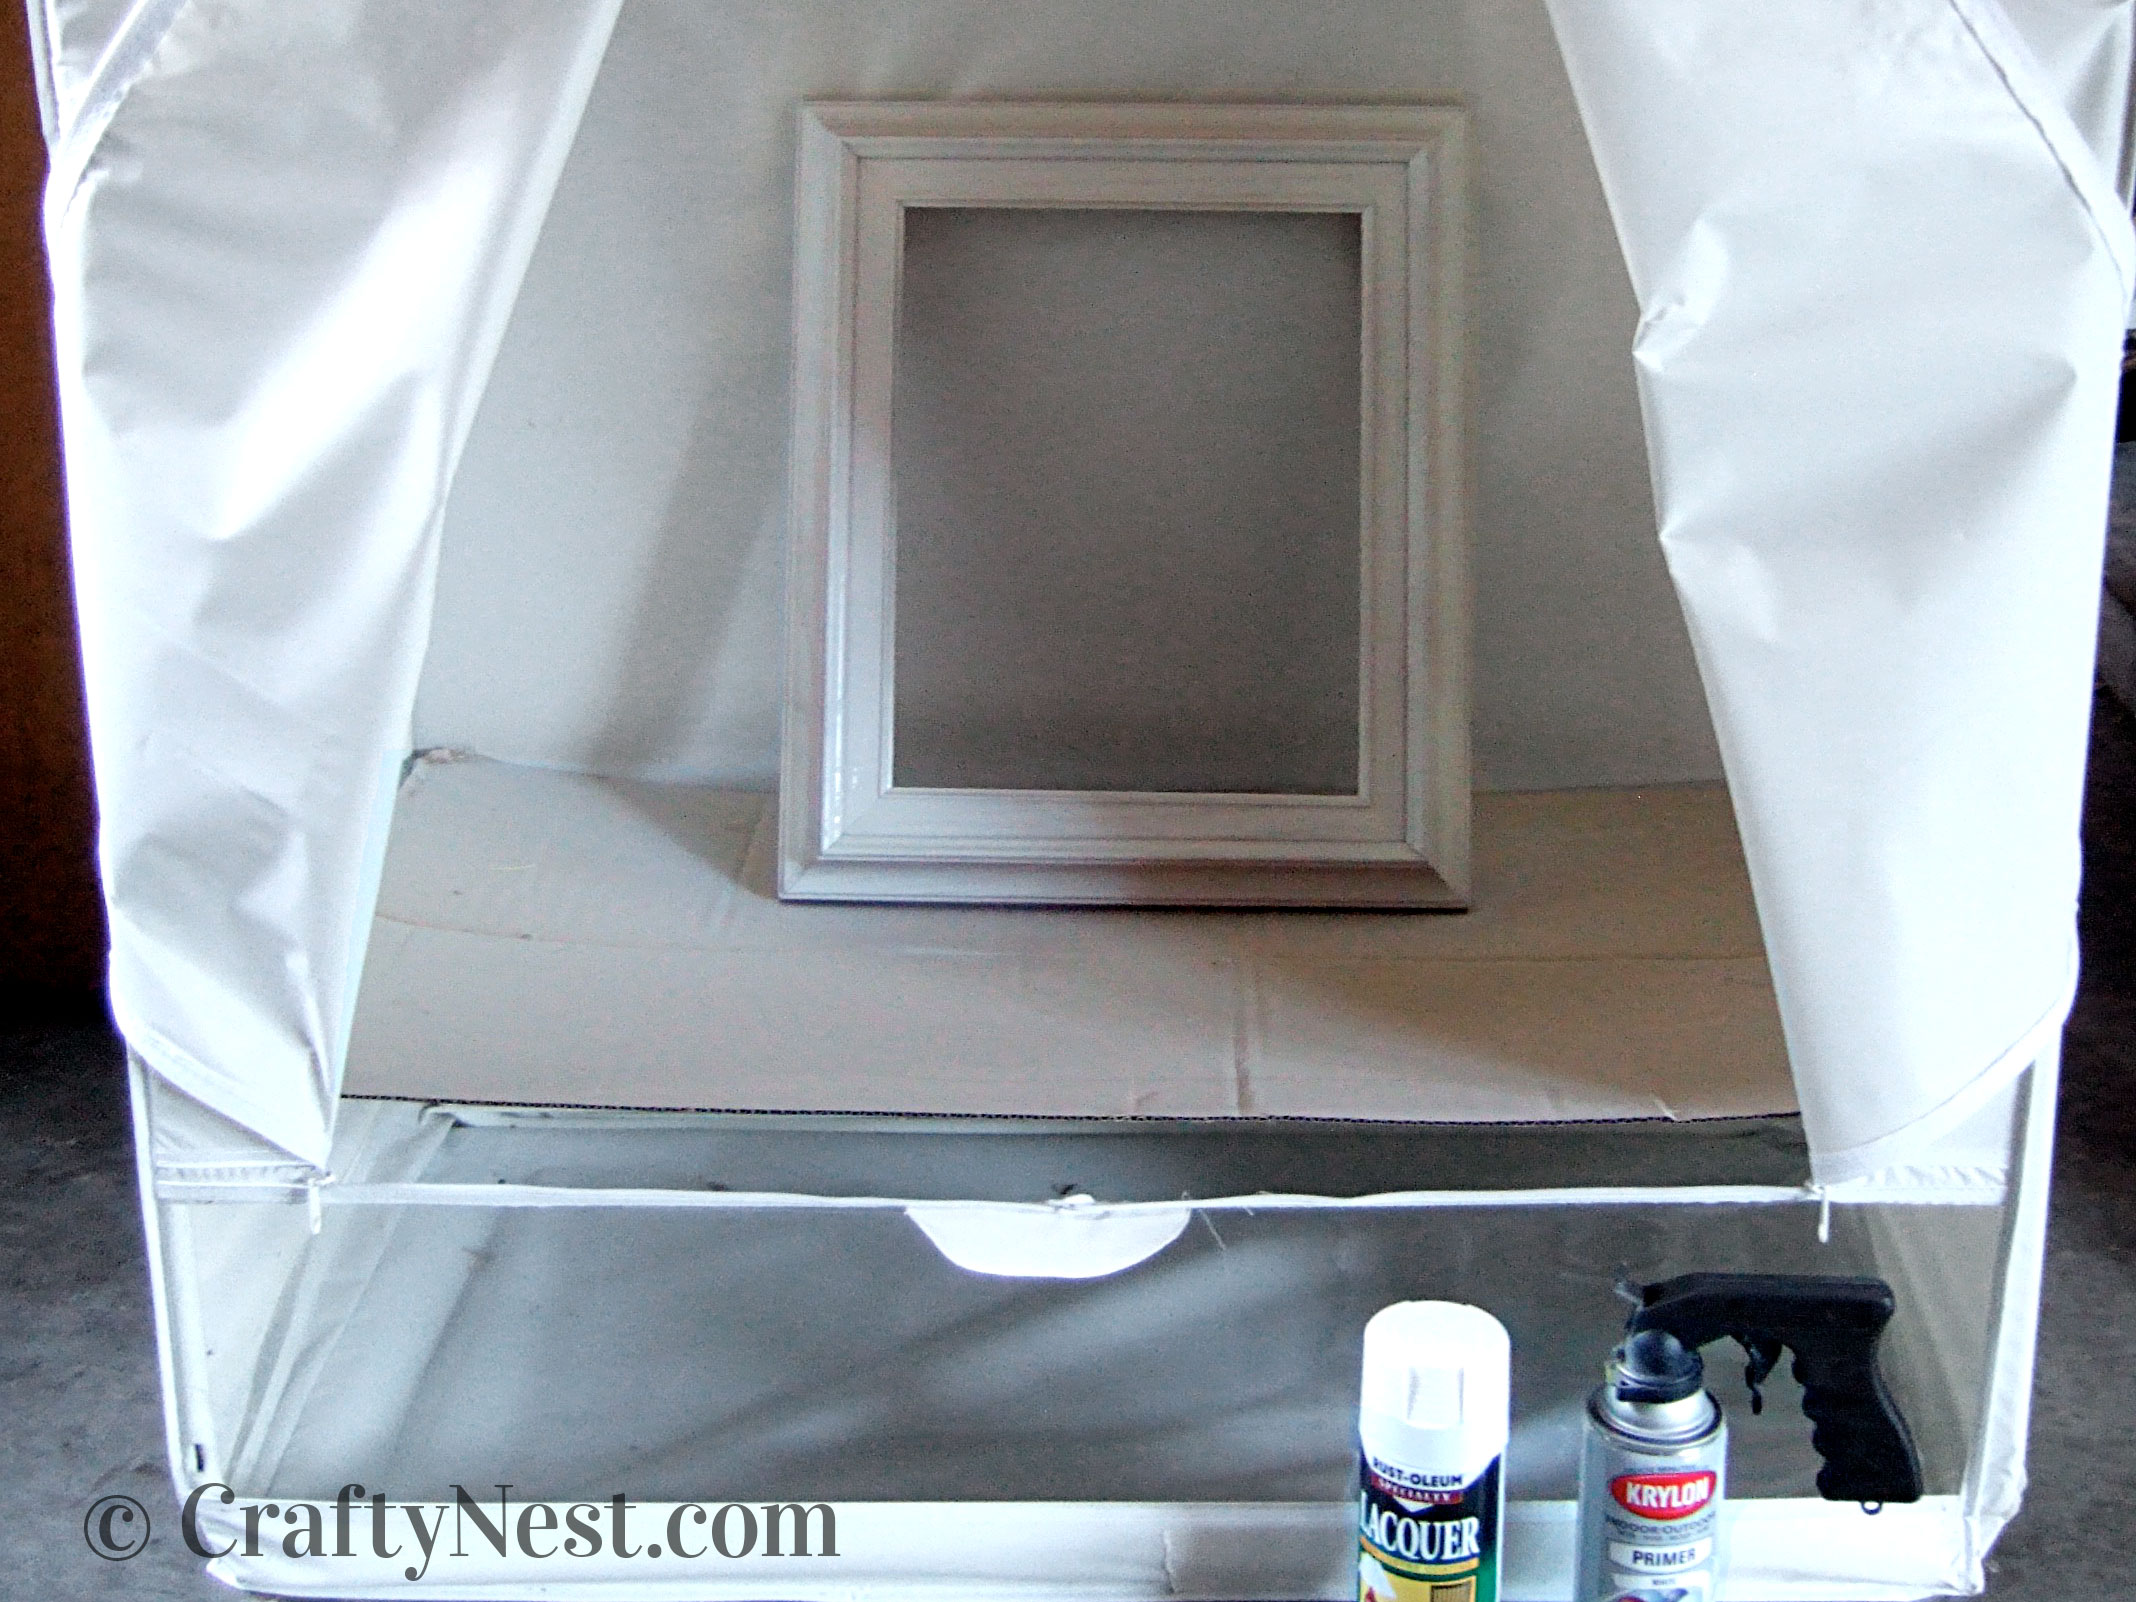 Spray-painting tent made from a plastic wardrobe, photo